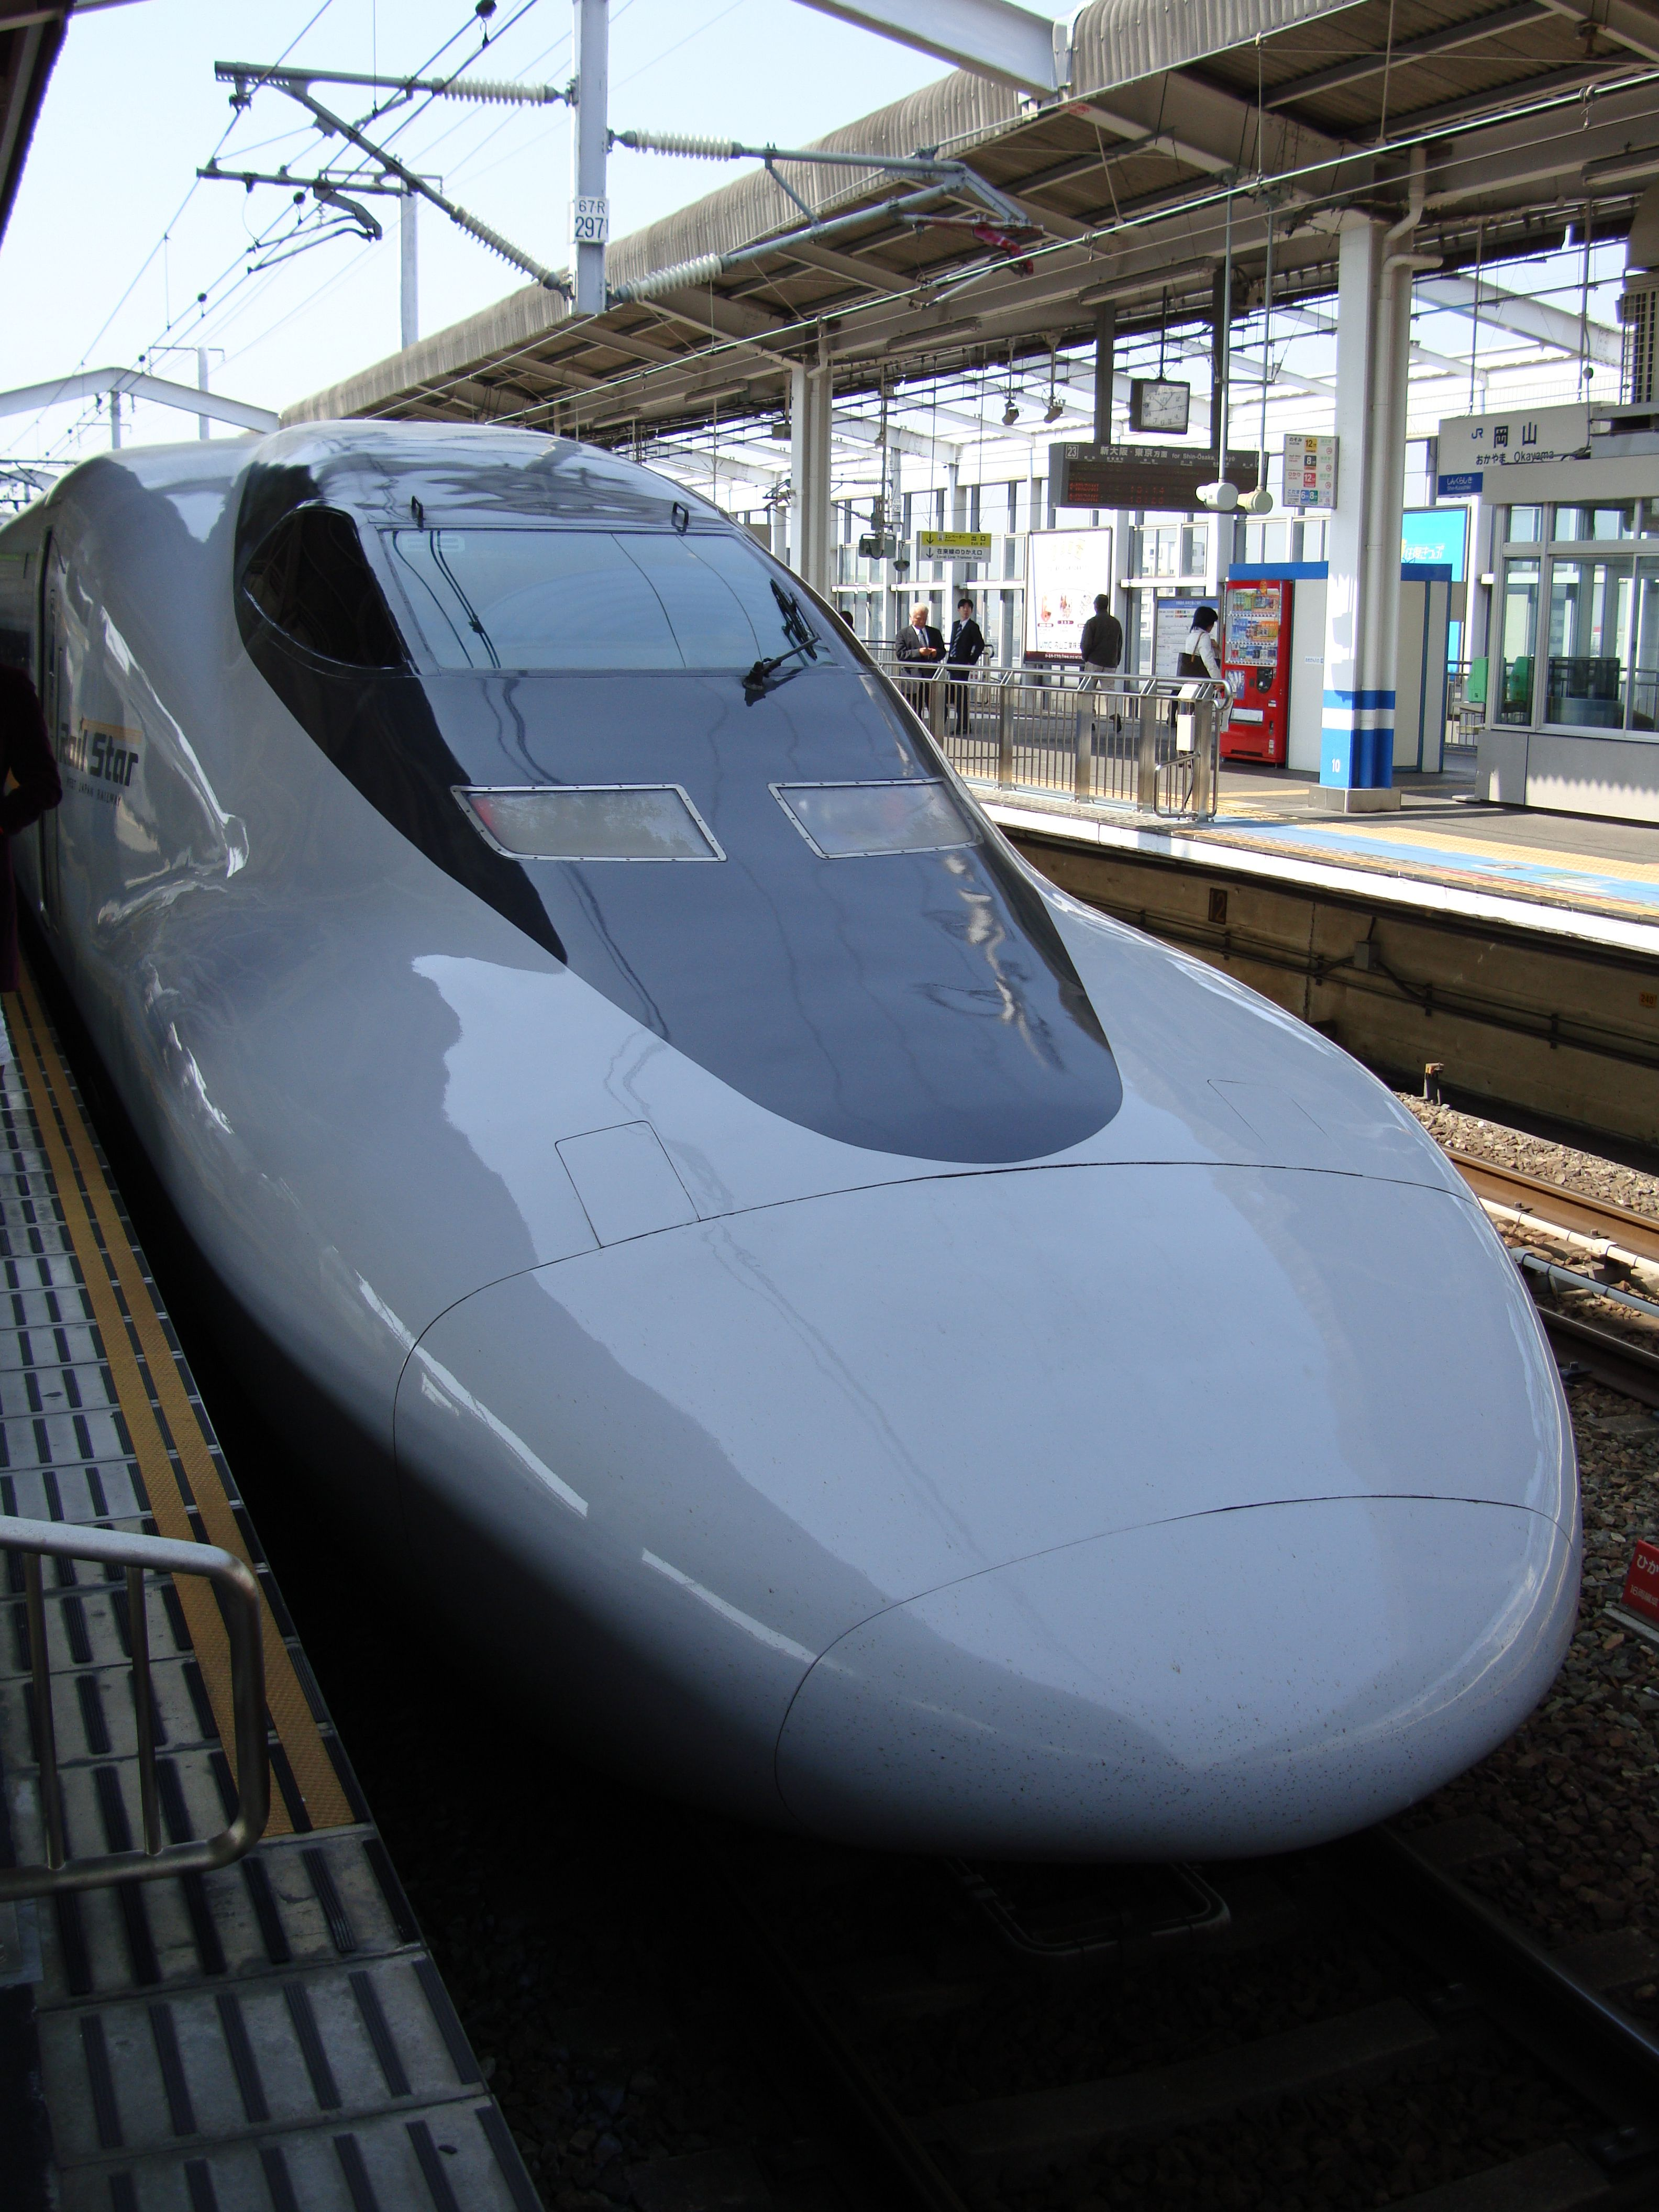 Taking the 500 series NOZUMI Bullet Train from Tokyo to Osaka